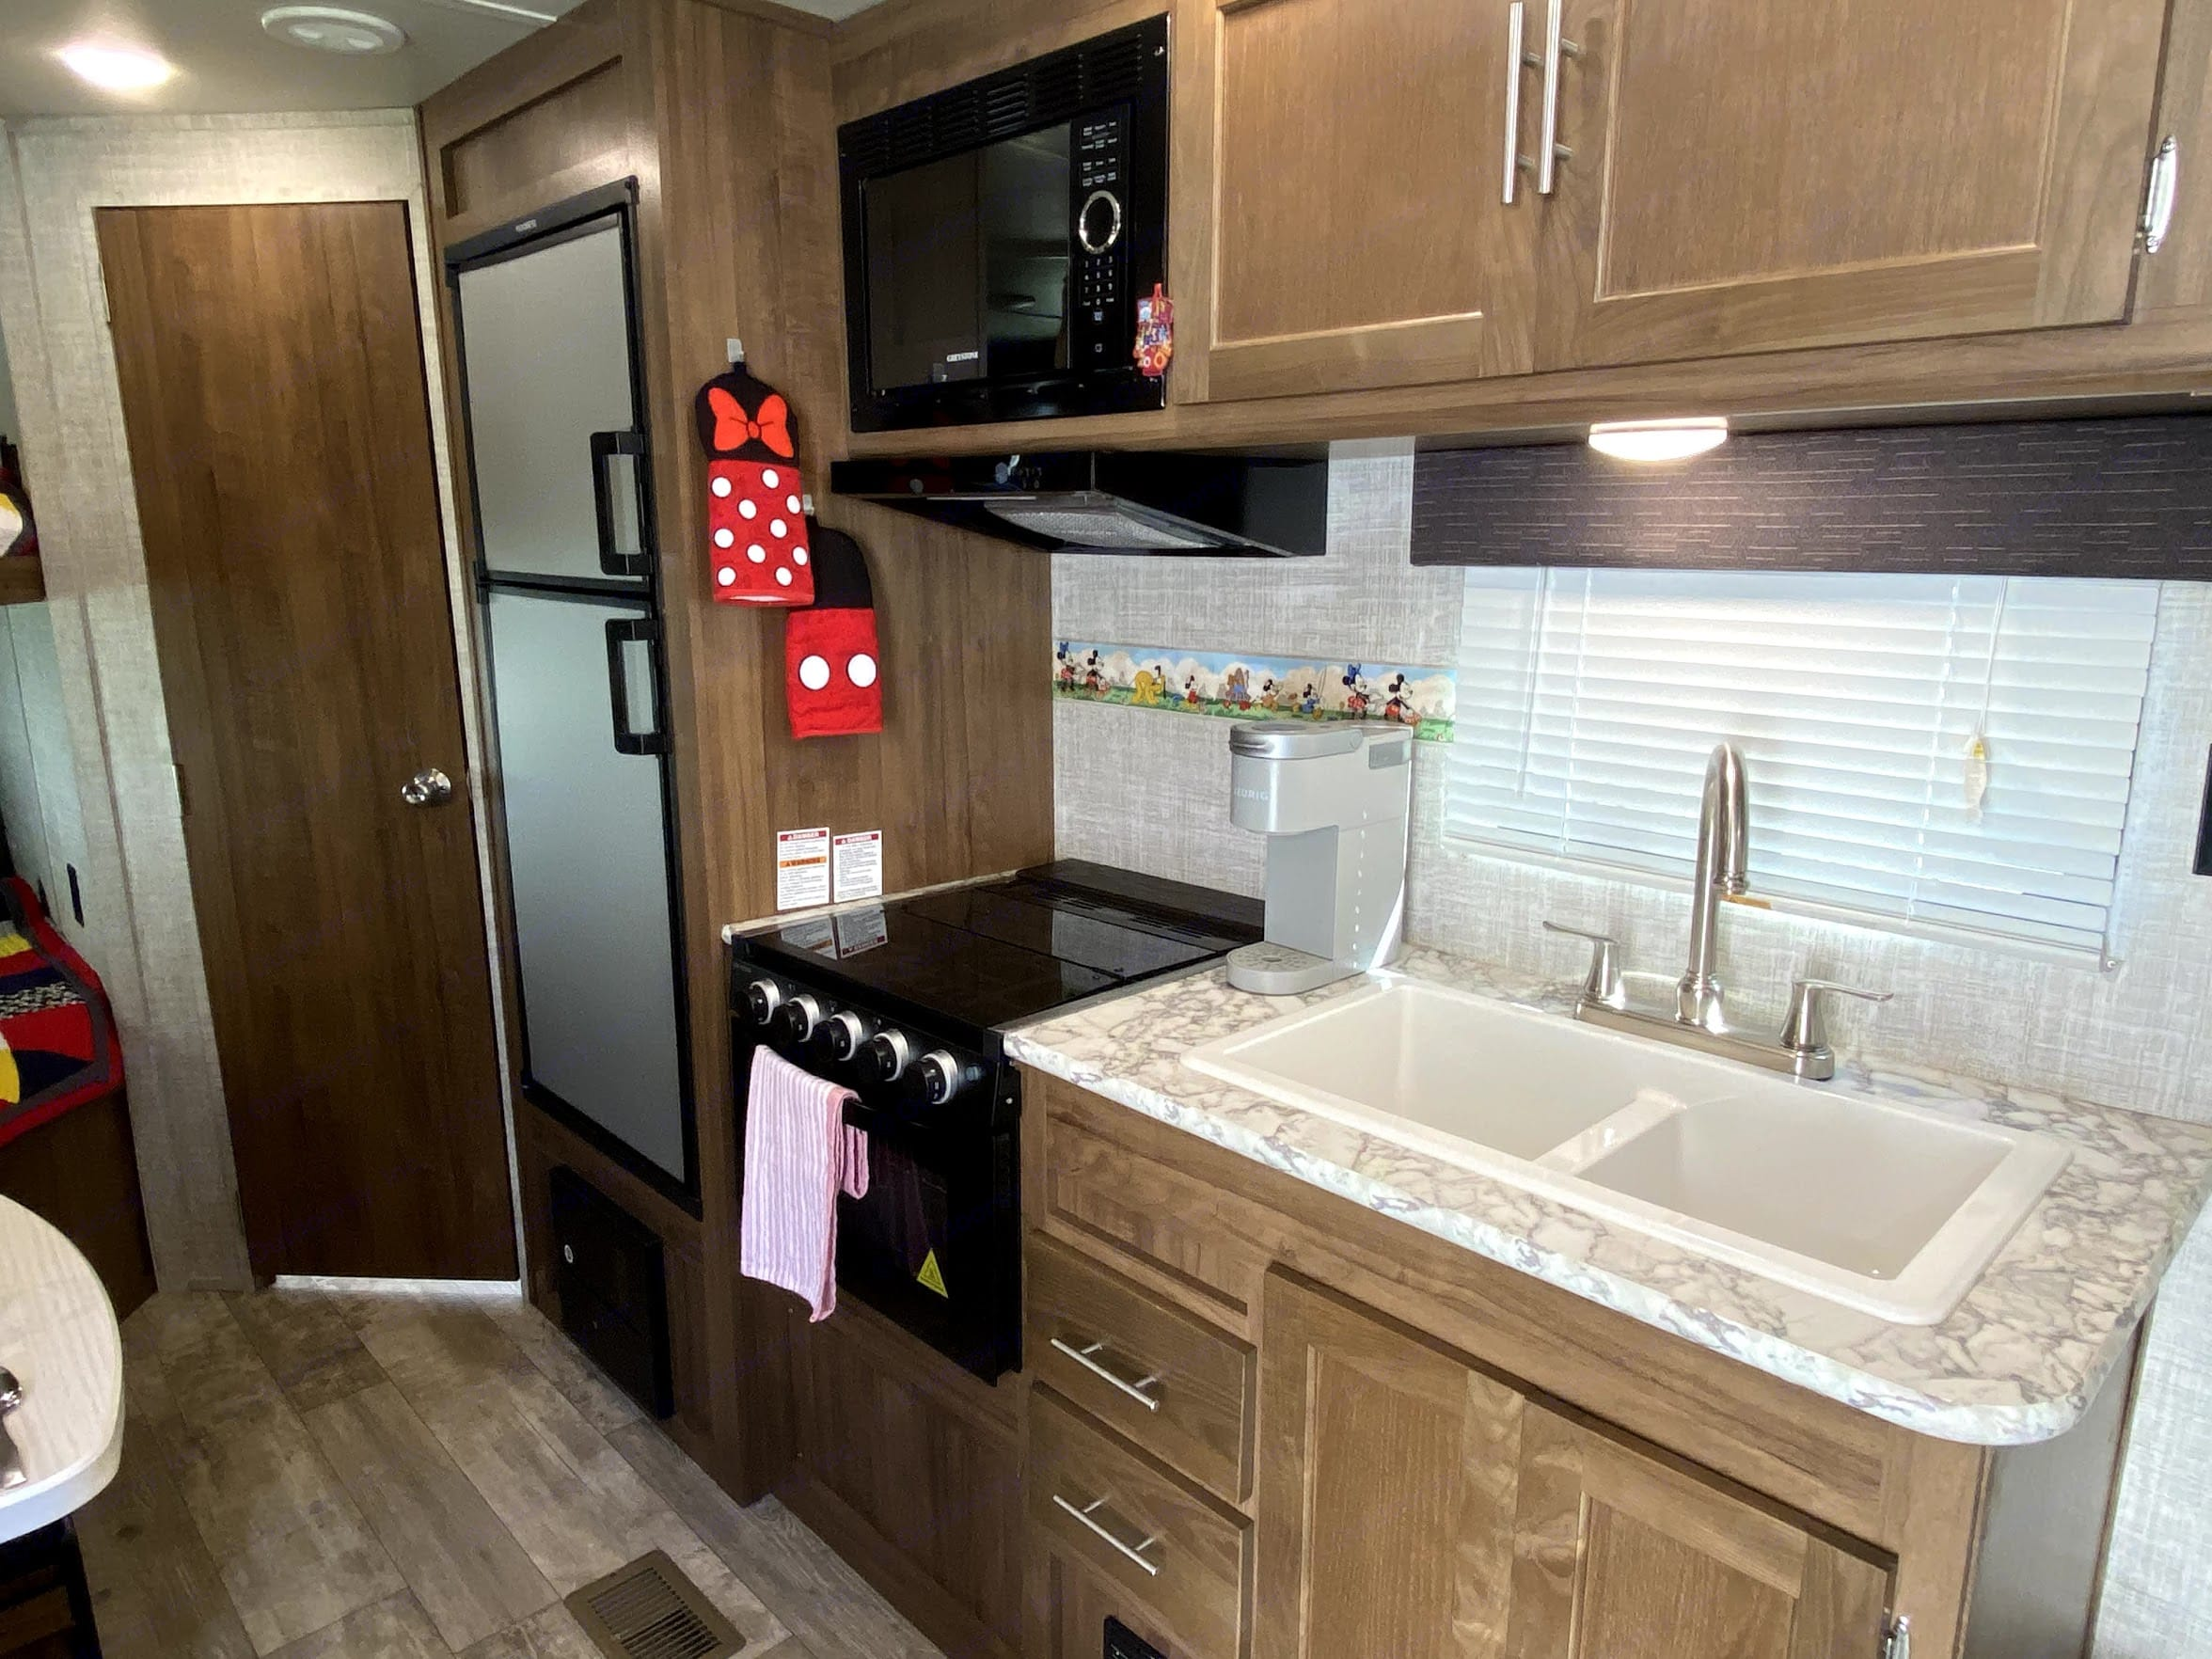 Kitchen includes refrigerator with freezer, 3-burner stove, oven, microwave and split sink. A Keurig is also included!. Gulf Stream Innsbruck 2020